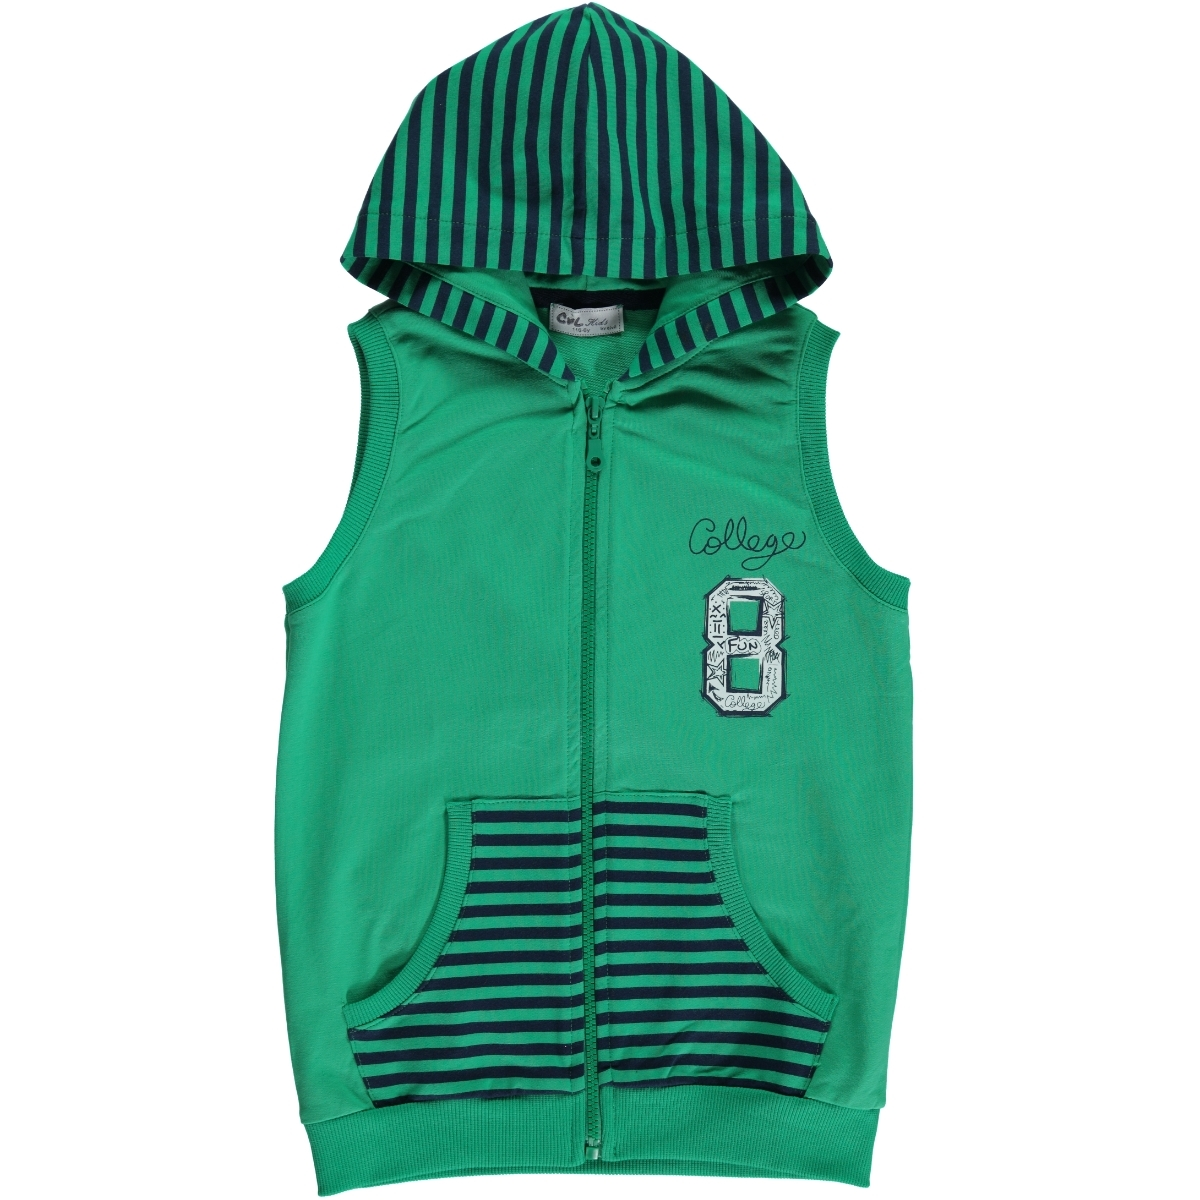 Cvl Boy Vest For 6-9 Age Yesil